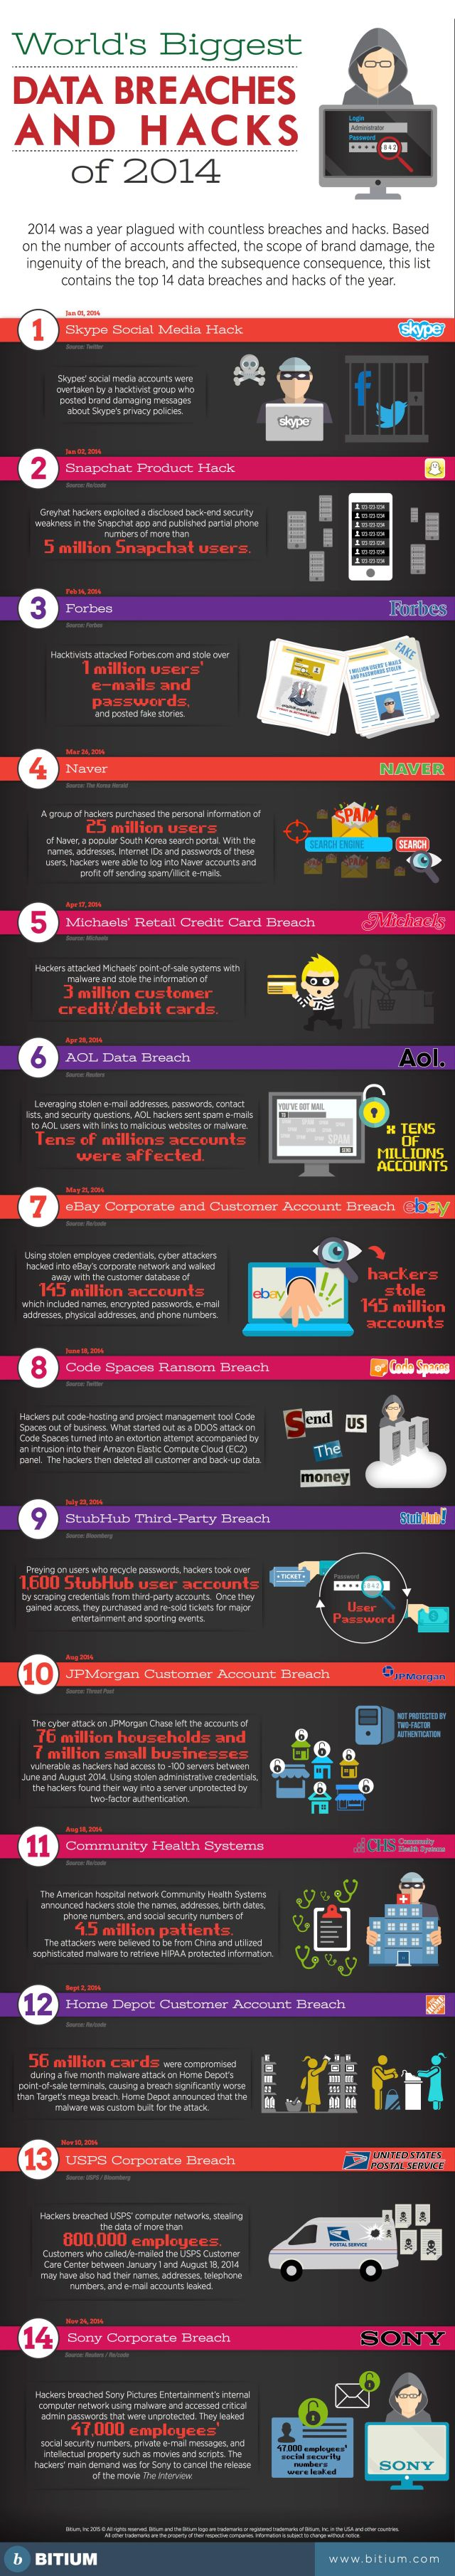 Biggest Data Breaches in 2014 (Infographic) | What's The Big Data?